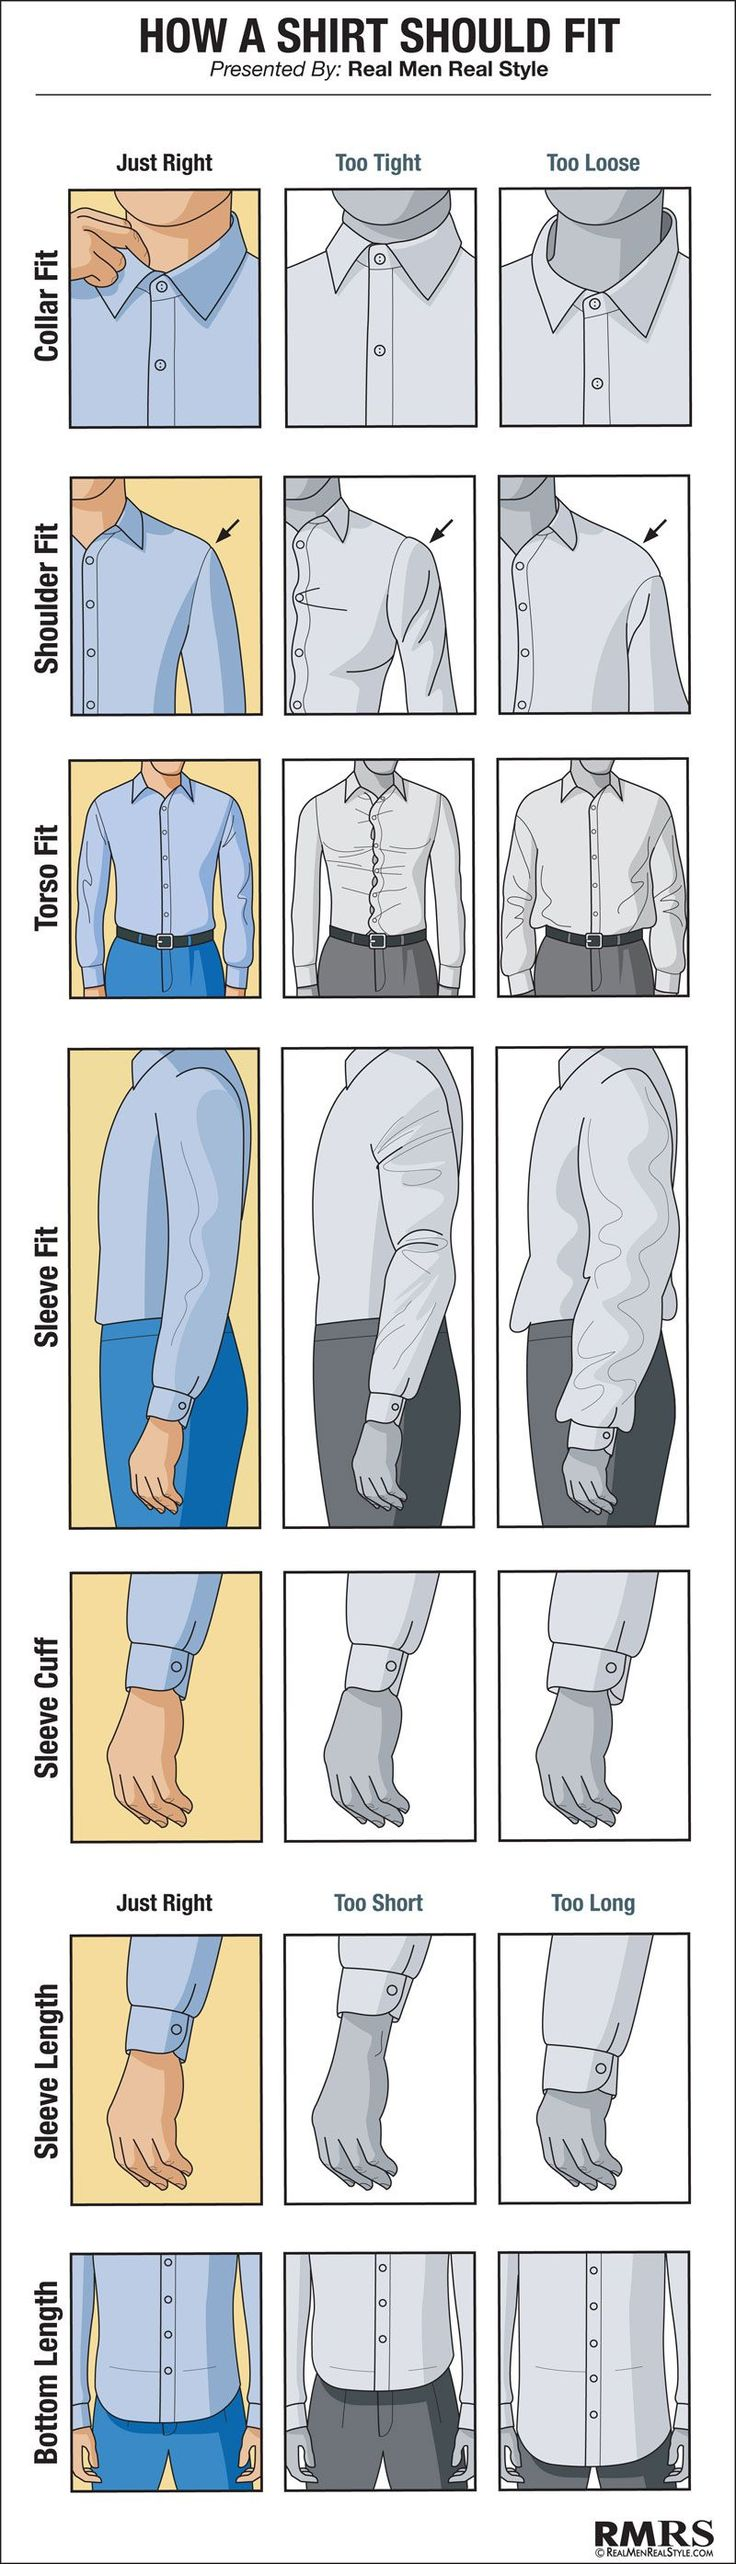 How A Dress Shirt Should Fit #Infographic #TieSociety #Dapper #Menswear